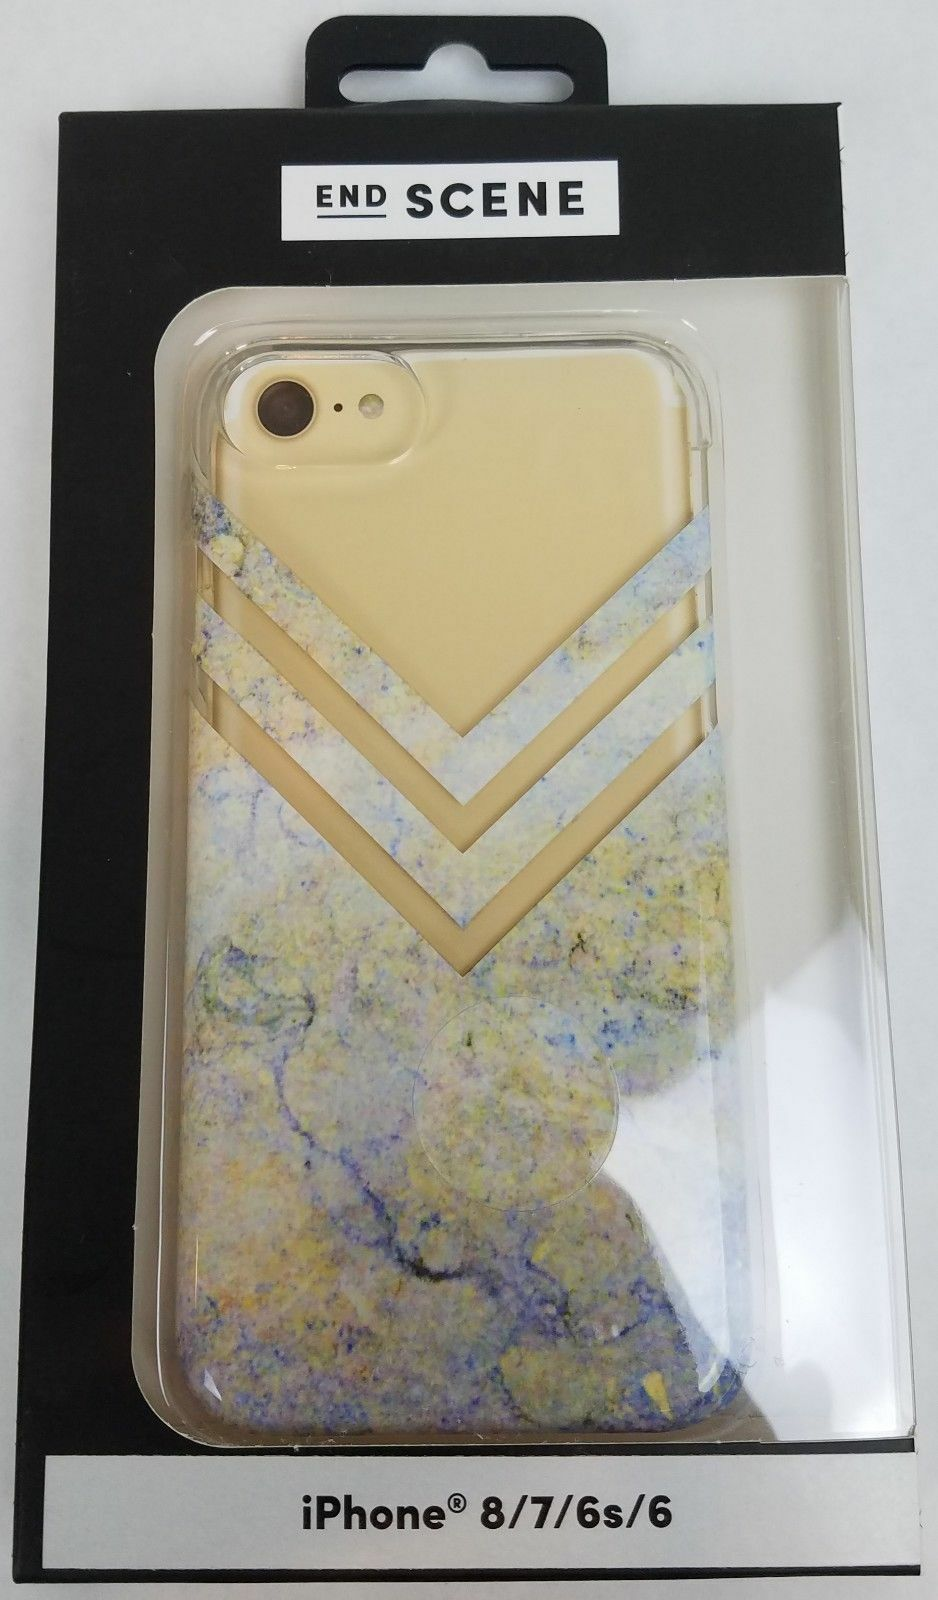 Primary image for End Scene iPhone 8/7/6s/6 Case - Marble Pastel new